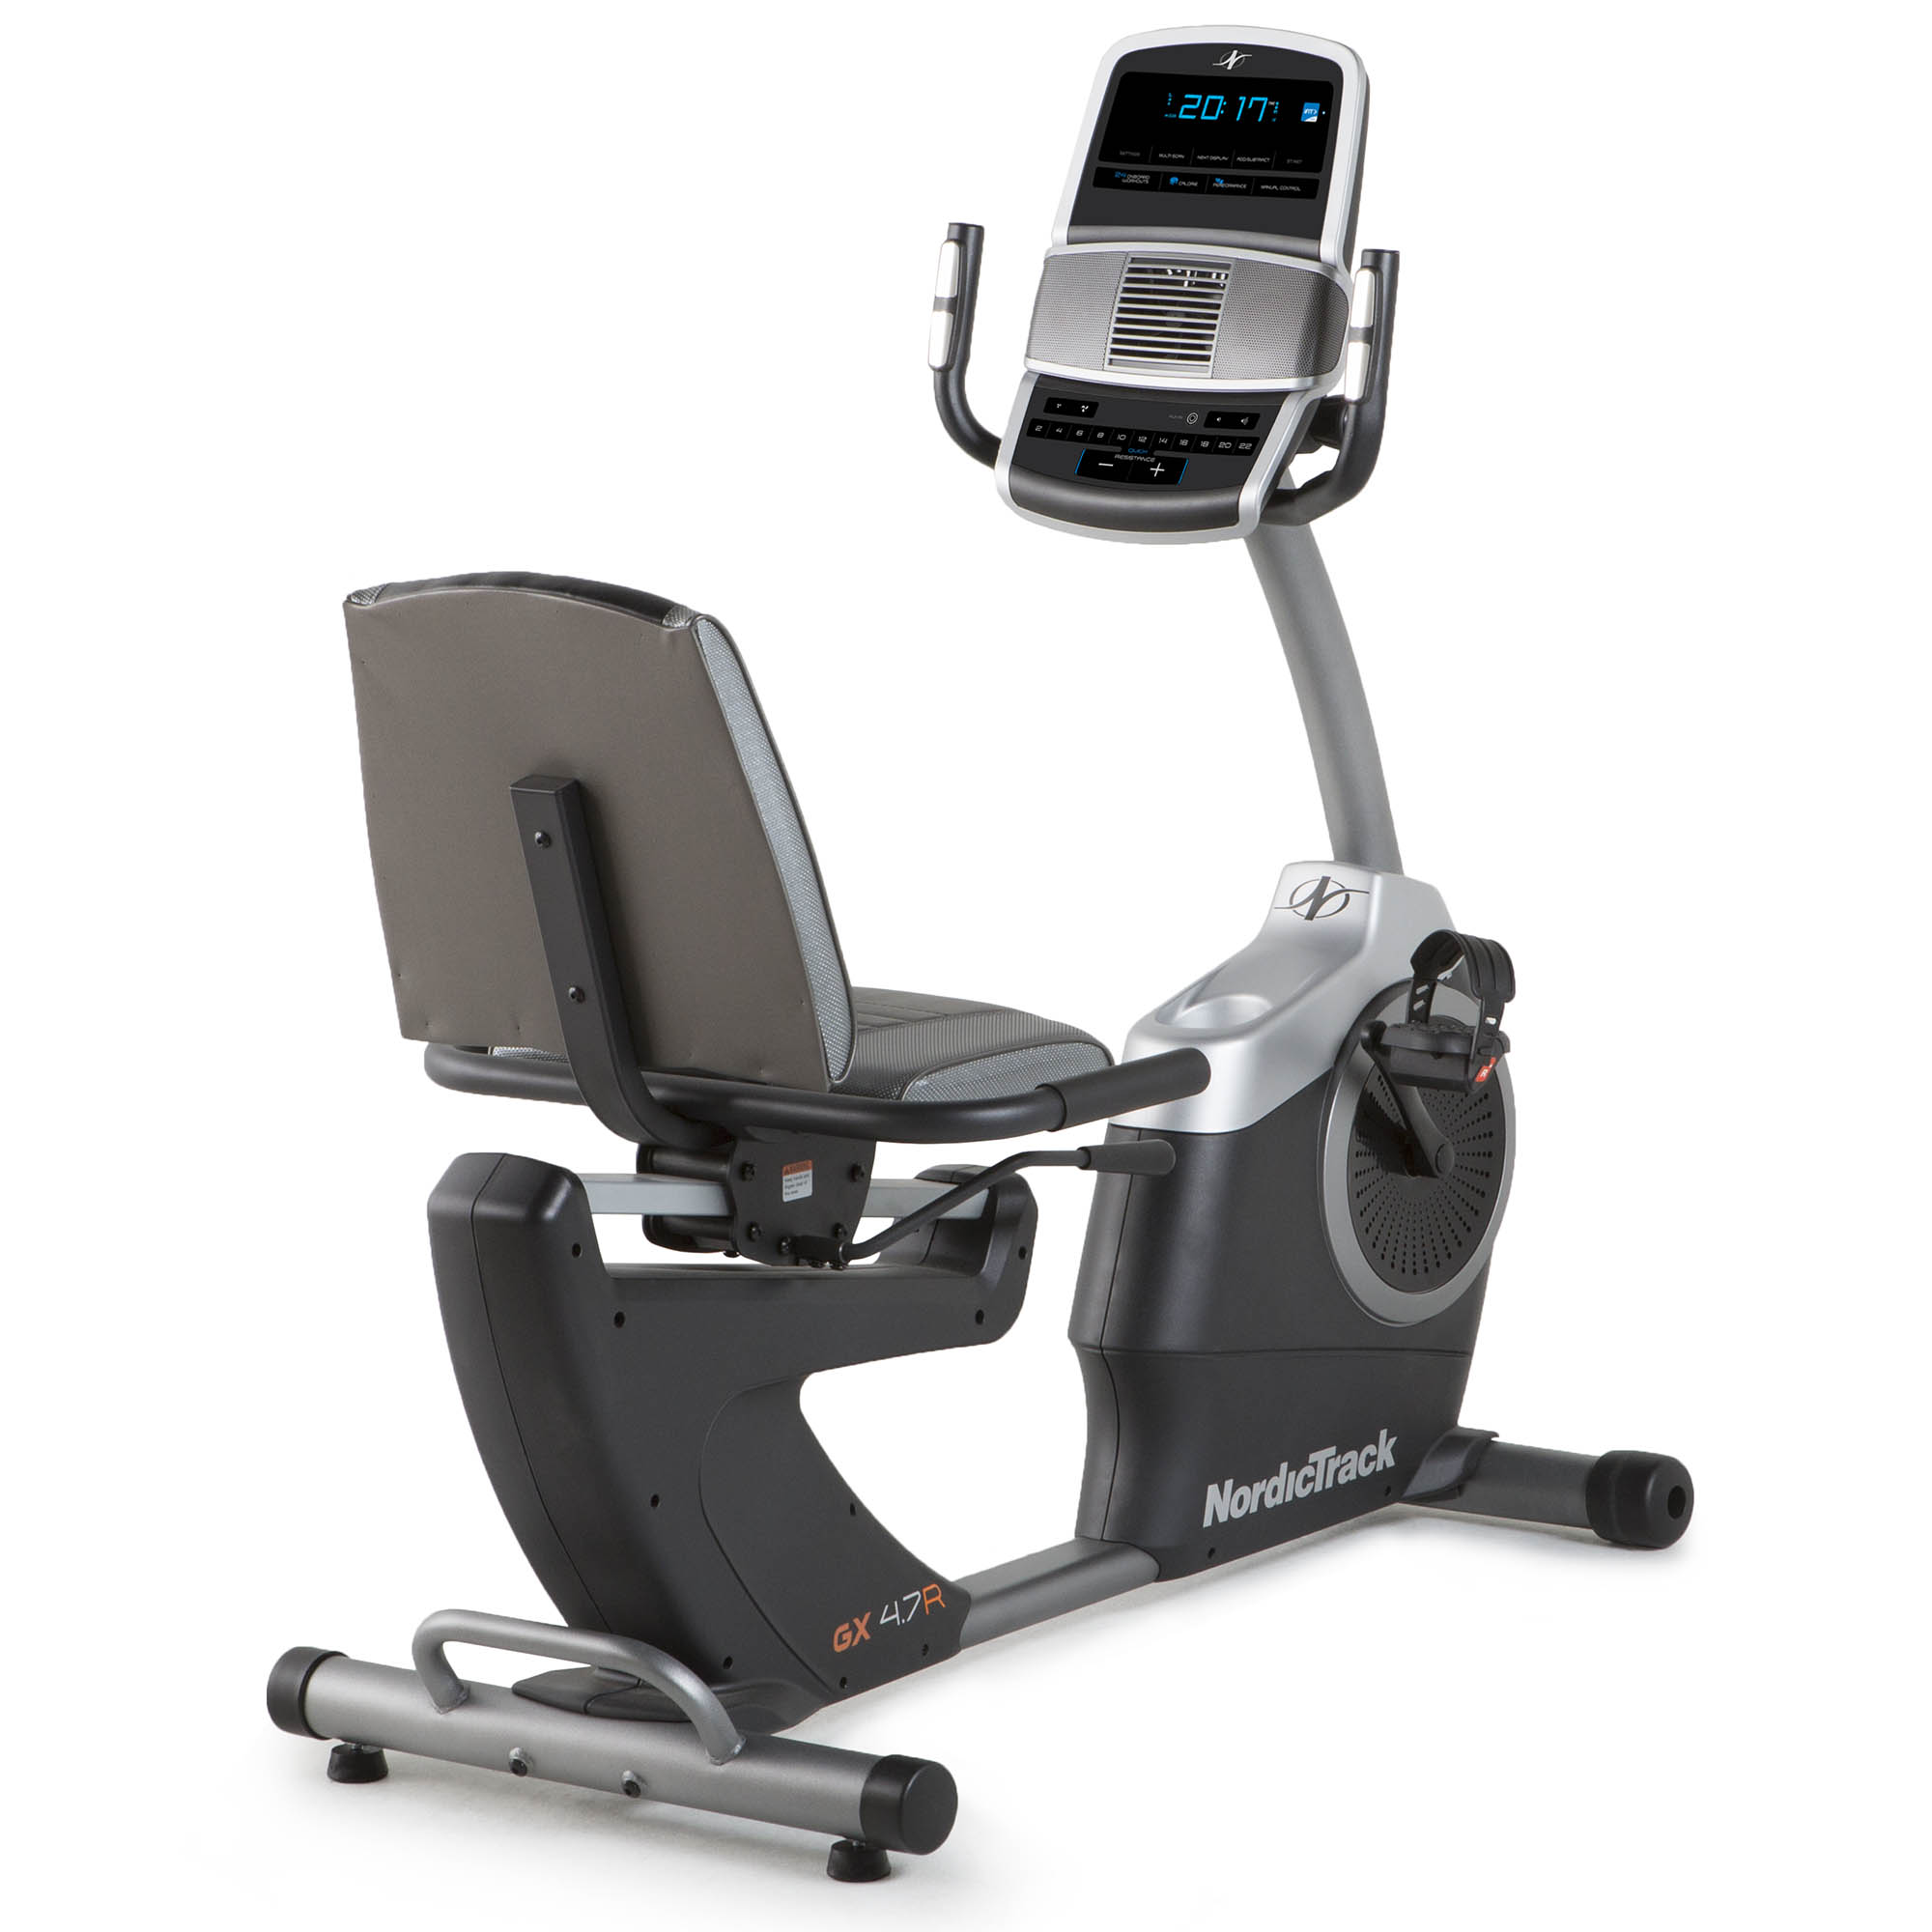 NordicTrack GX 4.7R Recumbent Exercise Bike